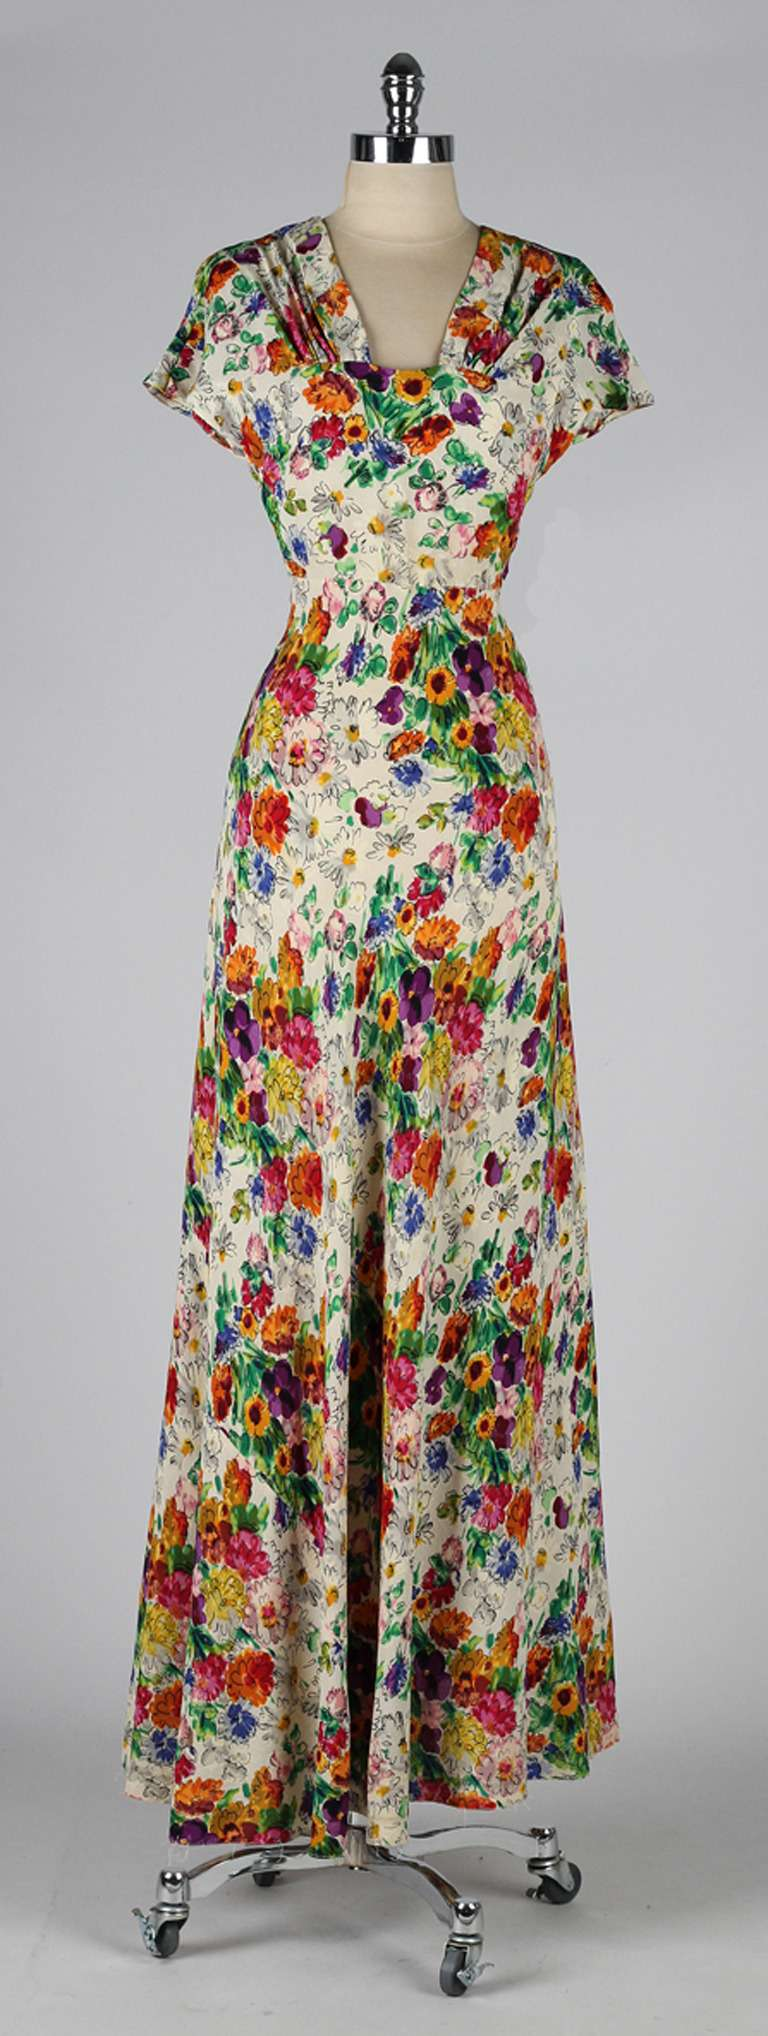 vintage 1930 s engel silk crepe floral dress at 1stdibs